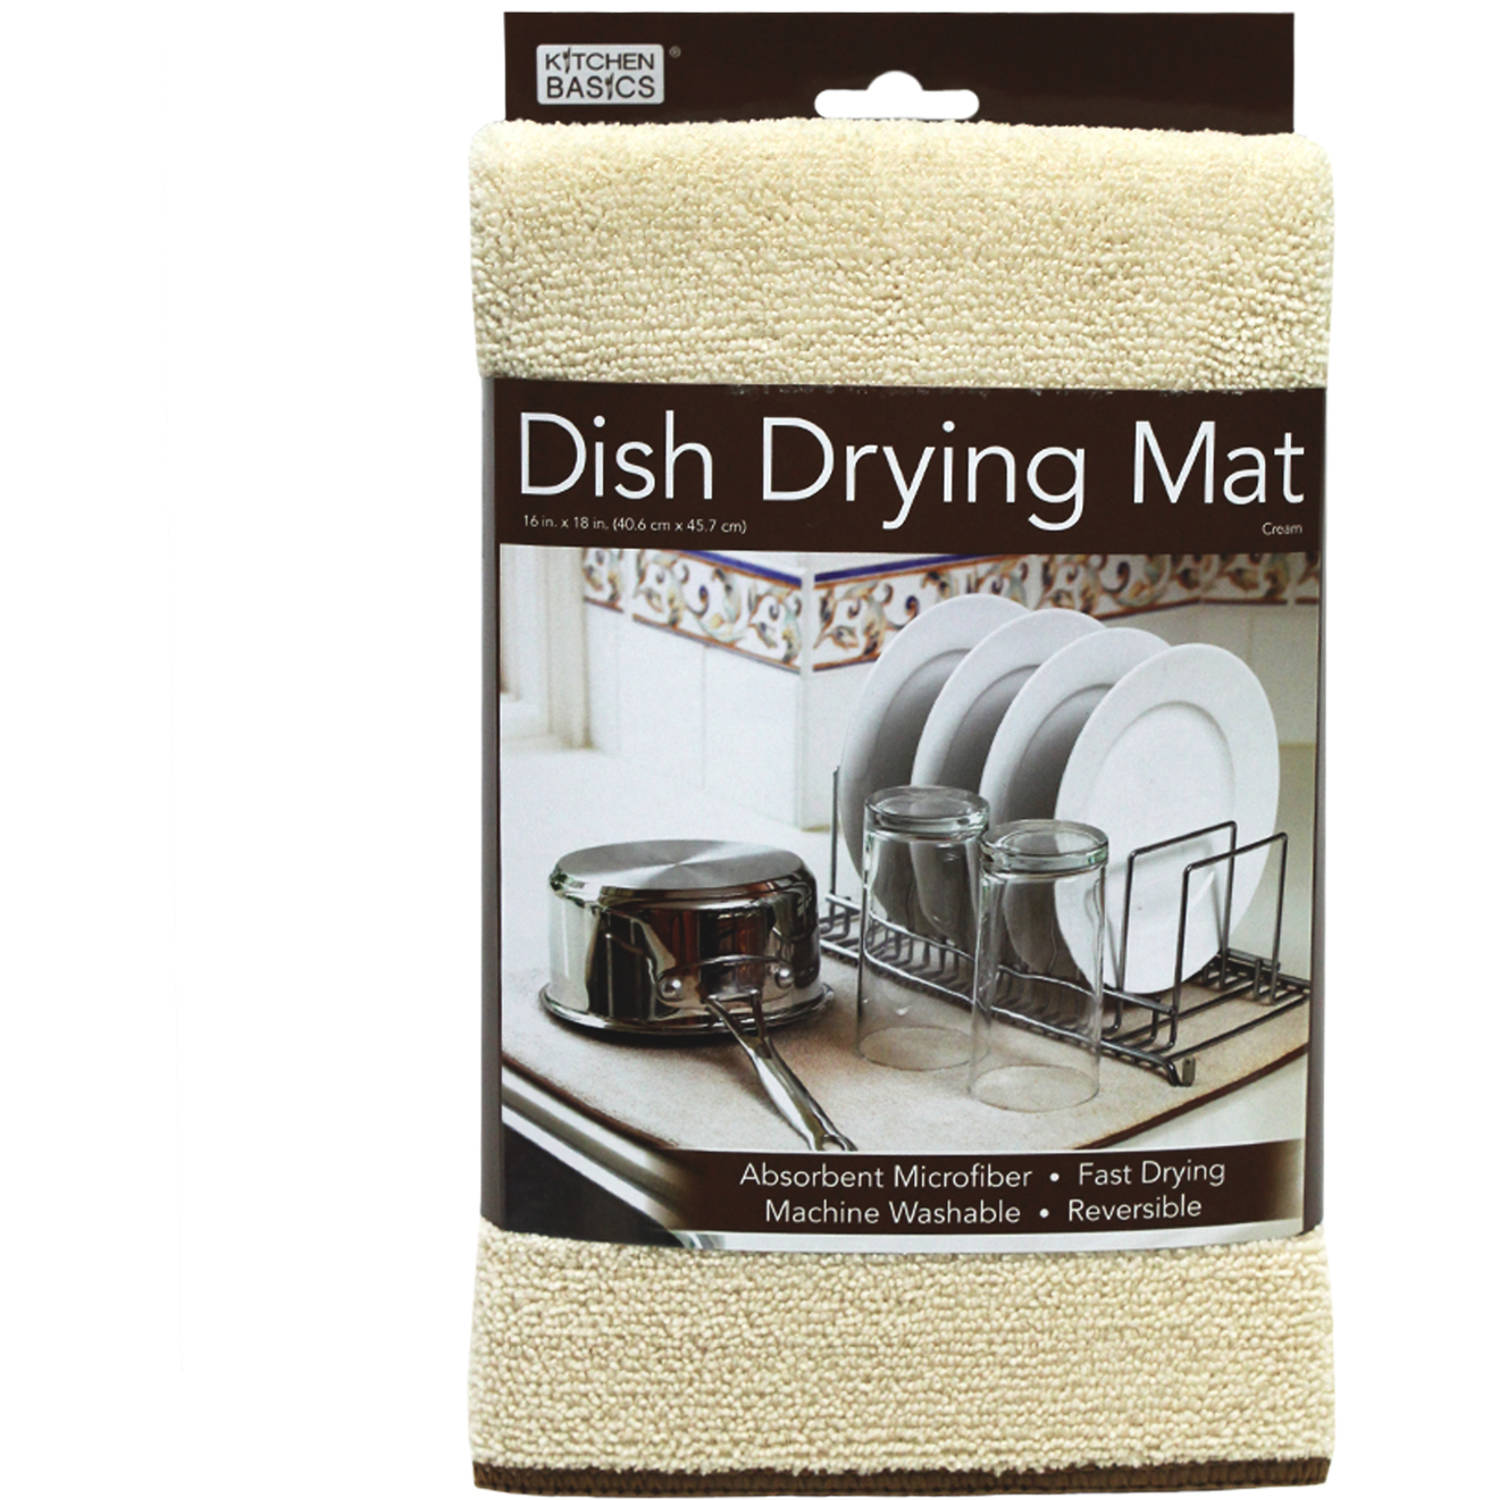 "Kitchen Basics Reversible Microfiber Dish Drying Mat - Cream - 16"" x 18"""